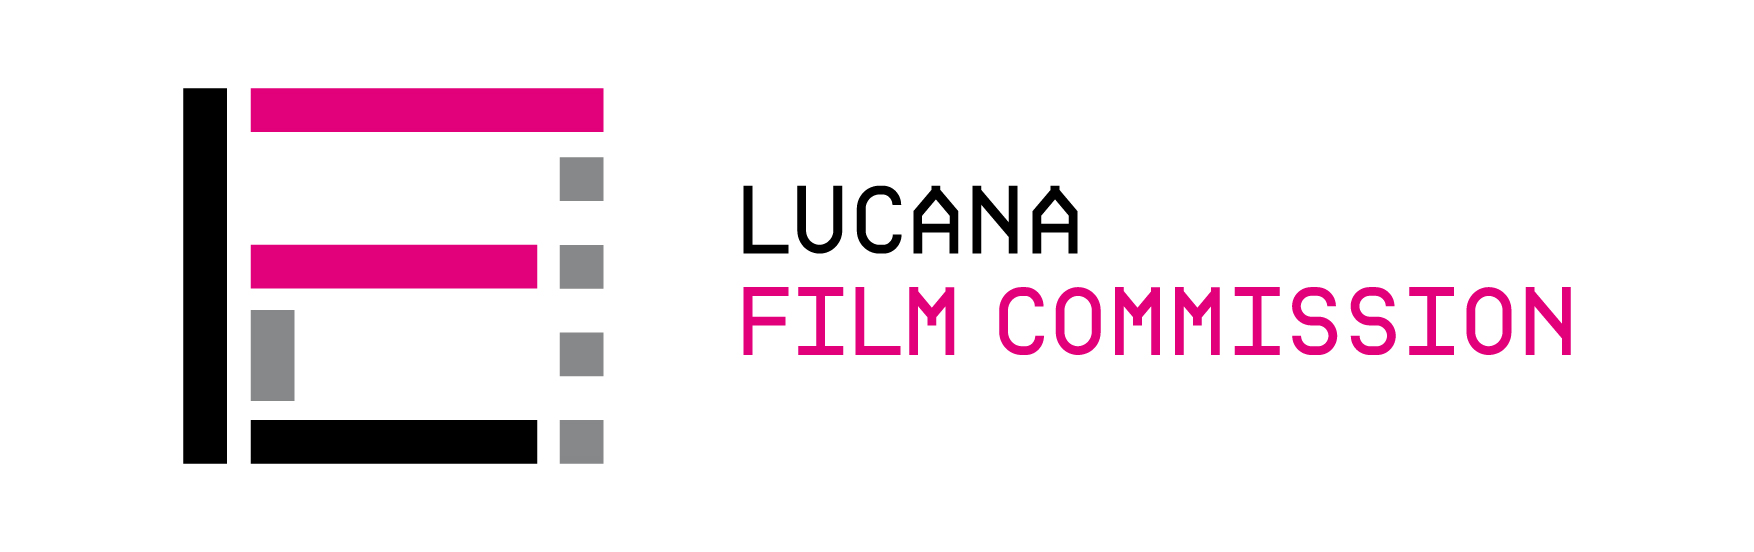 lucana-film-commission